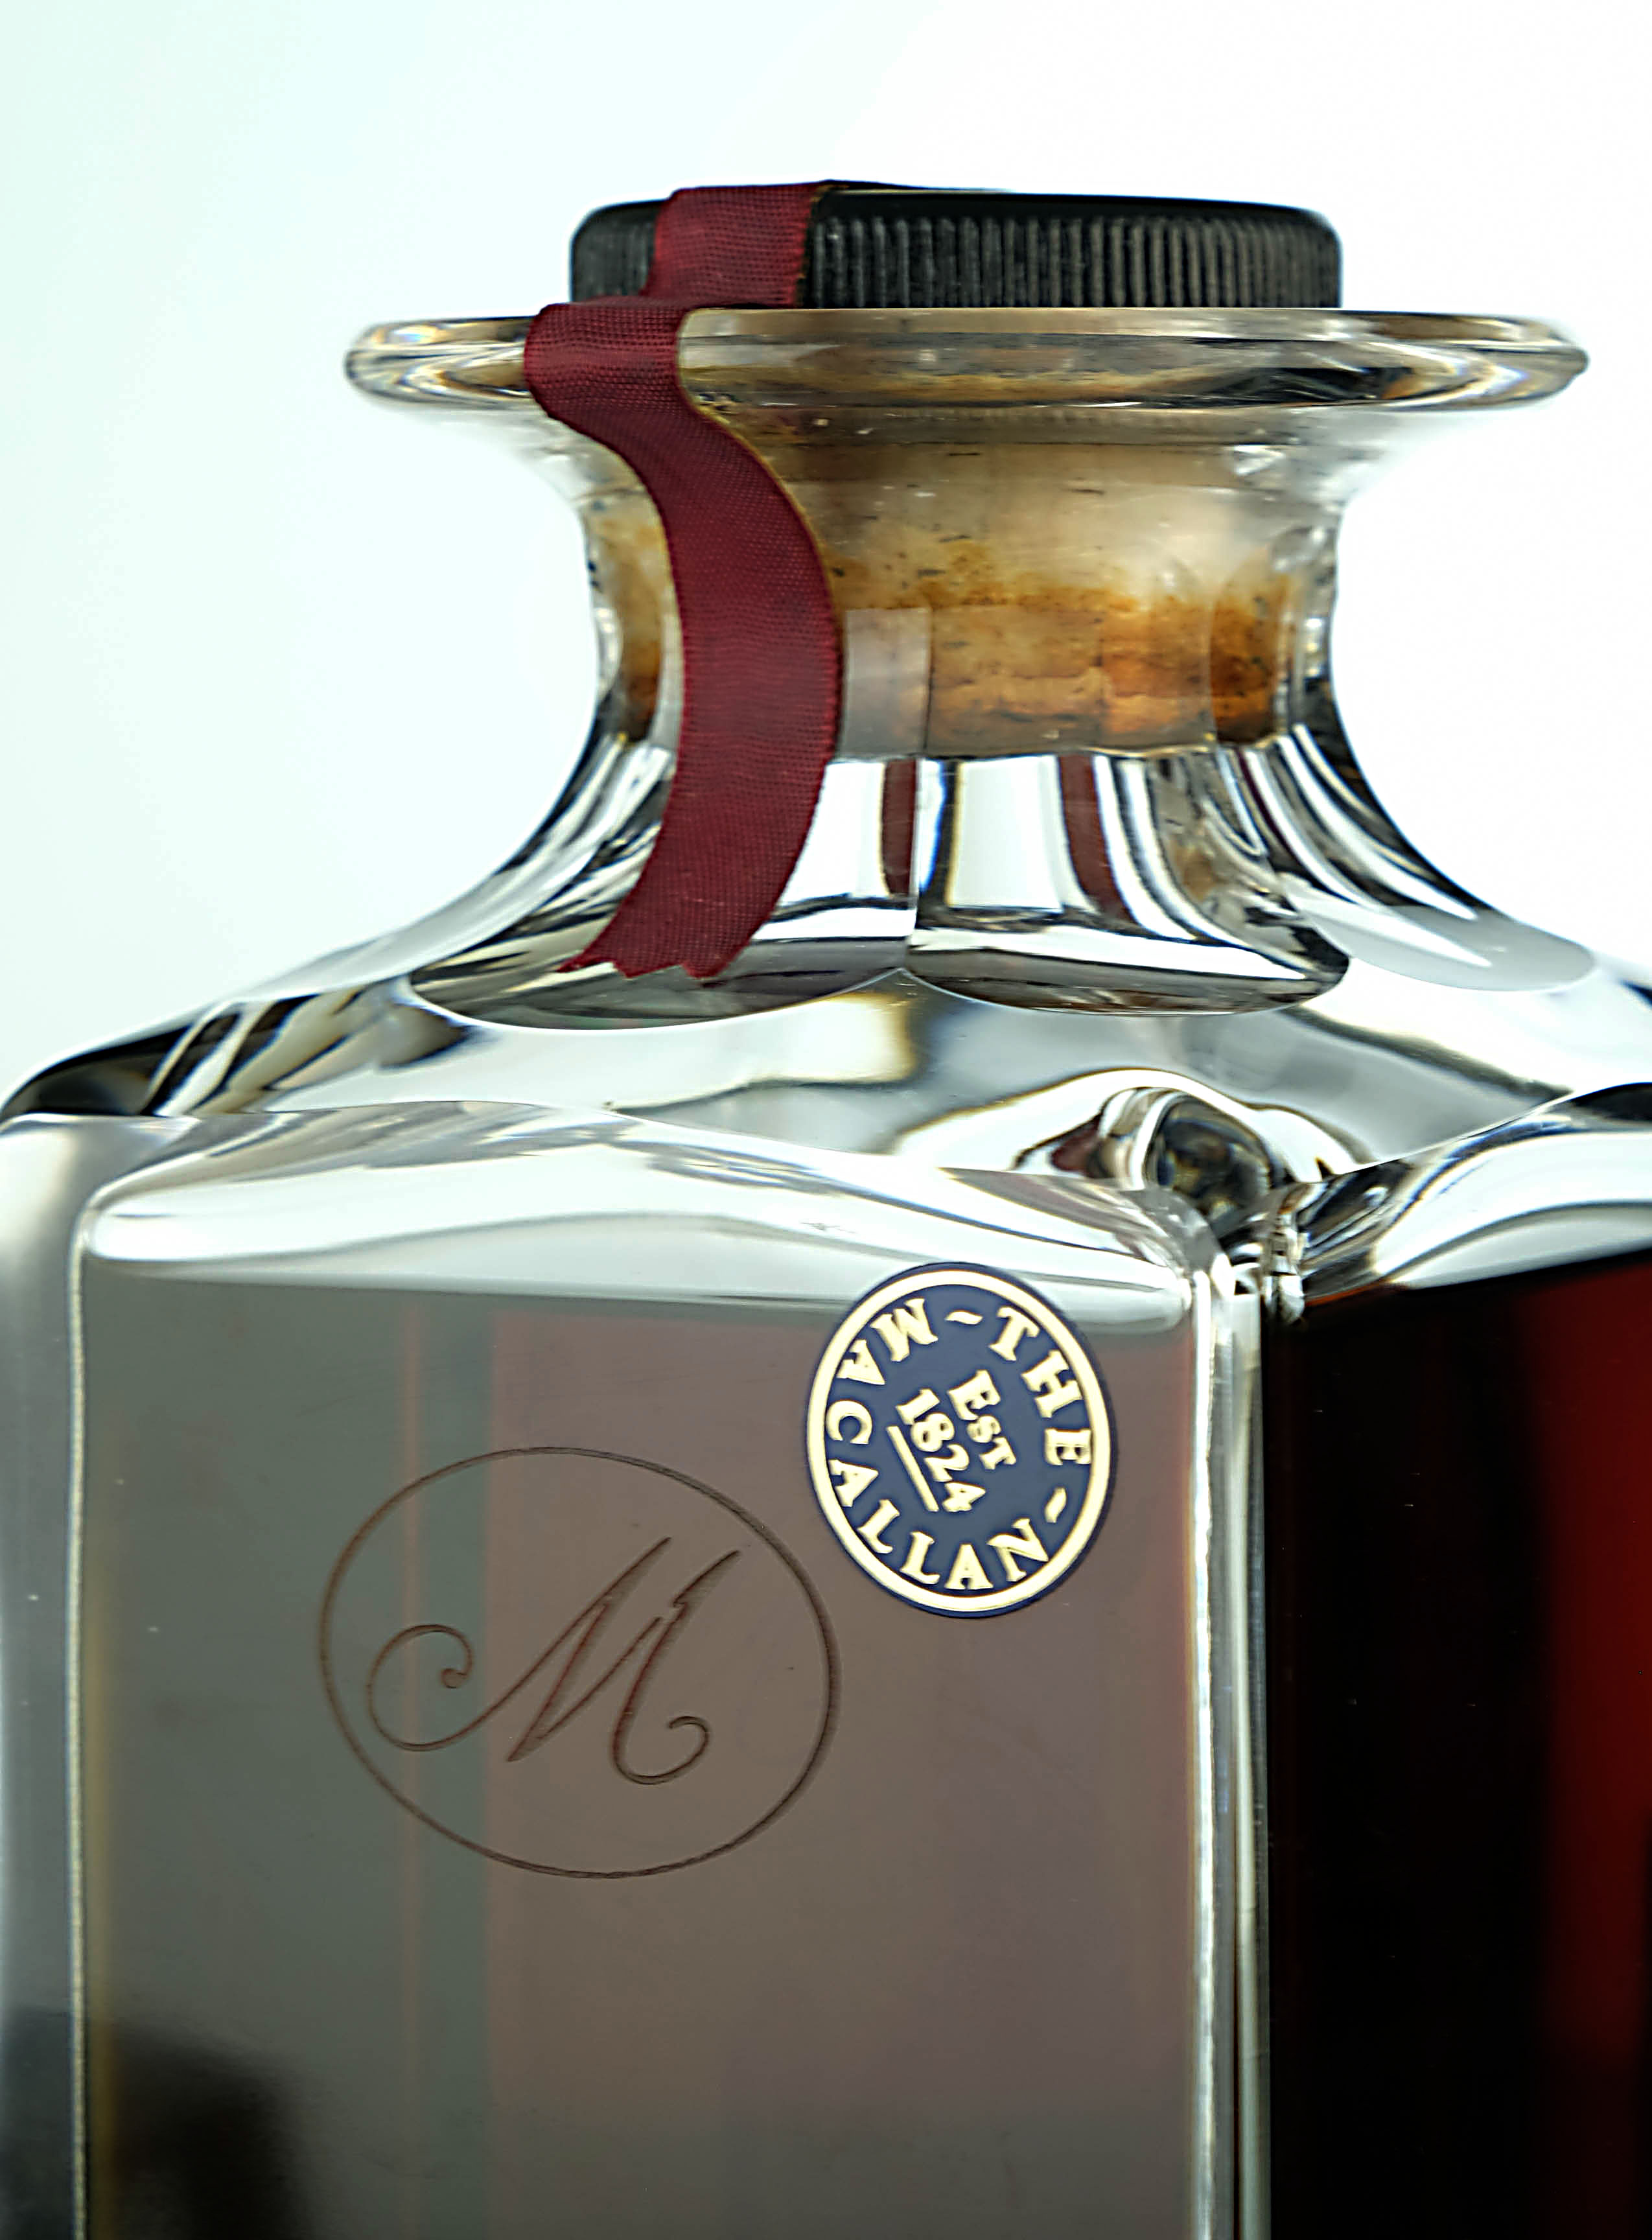 macallan 1965 - 25 year old - crystal decanter